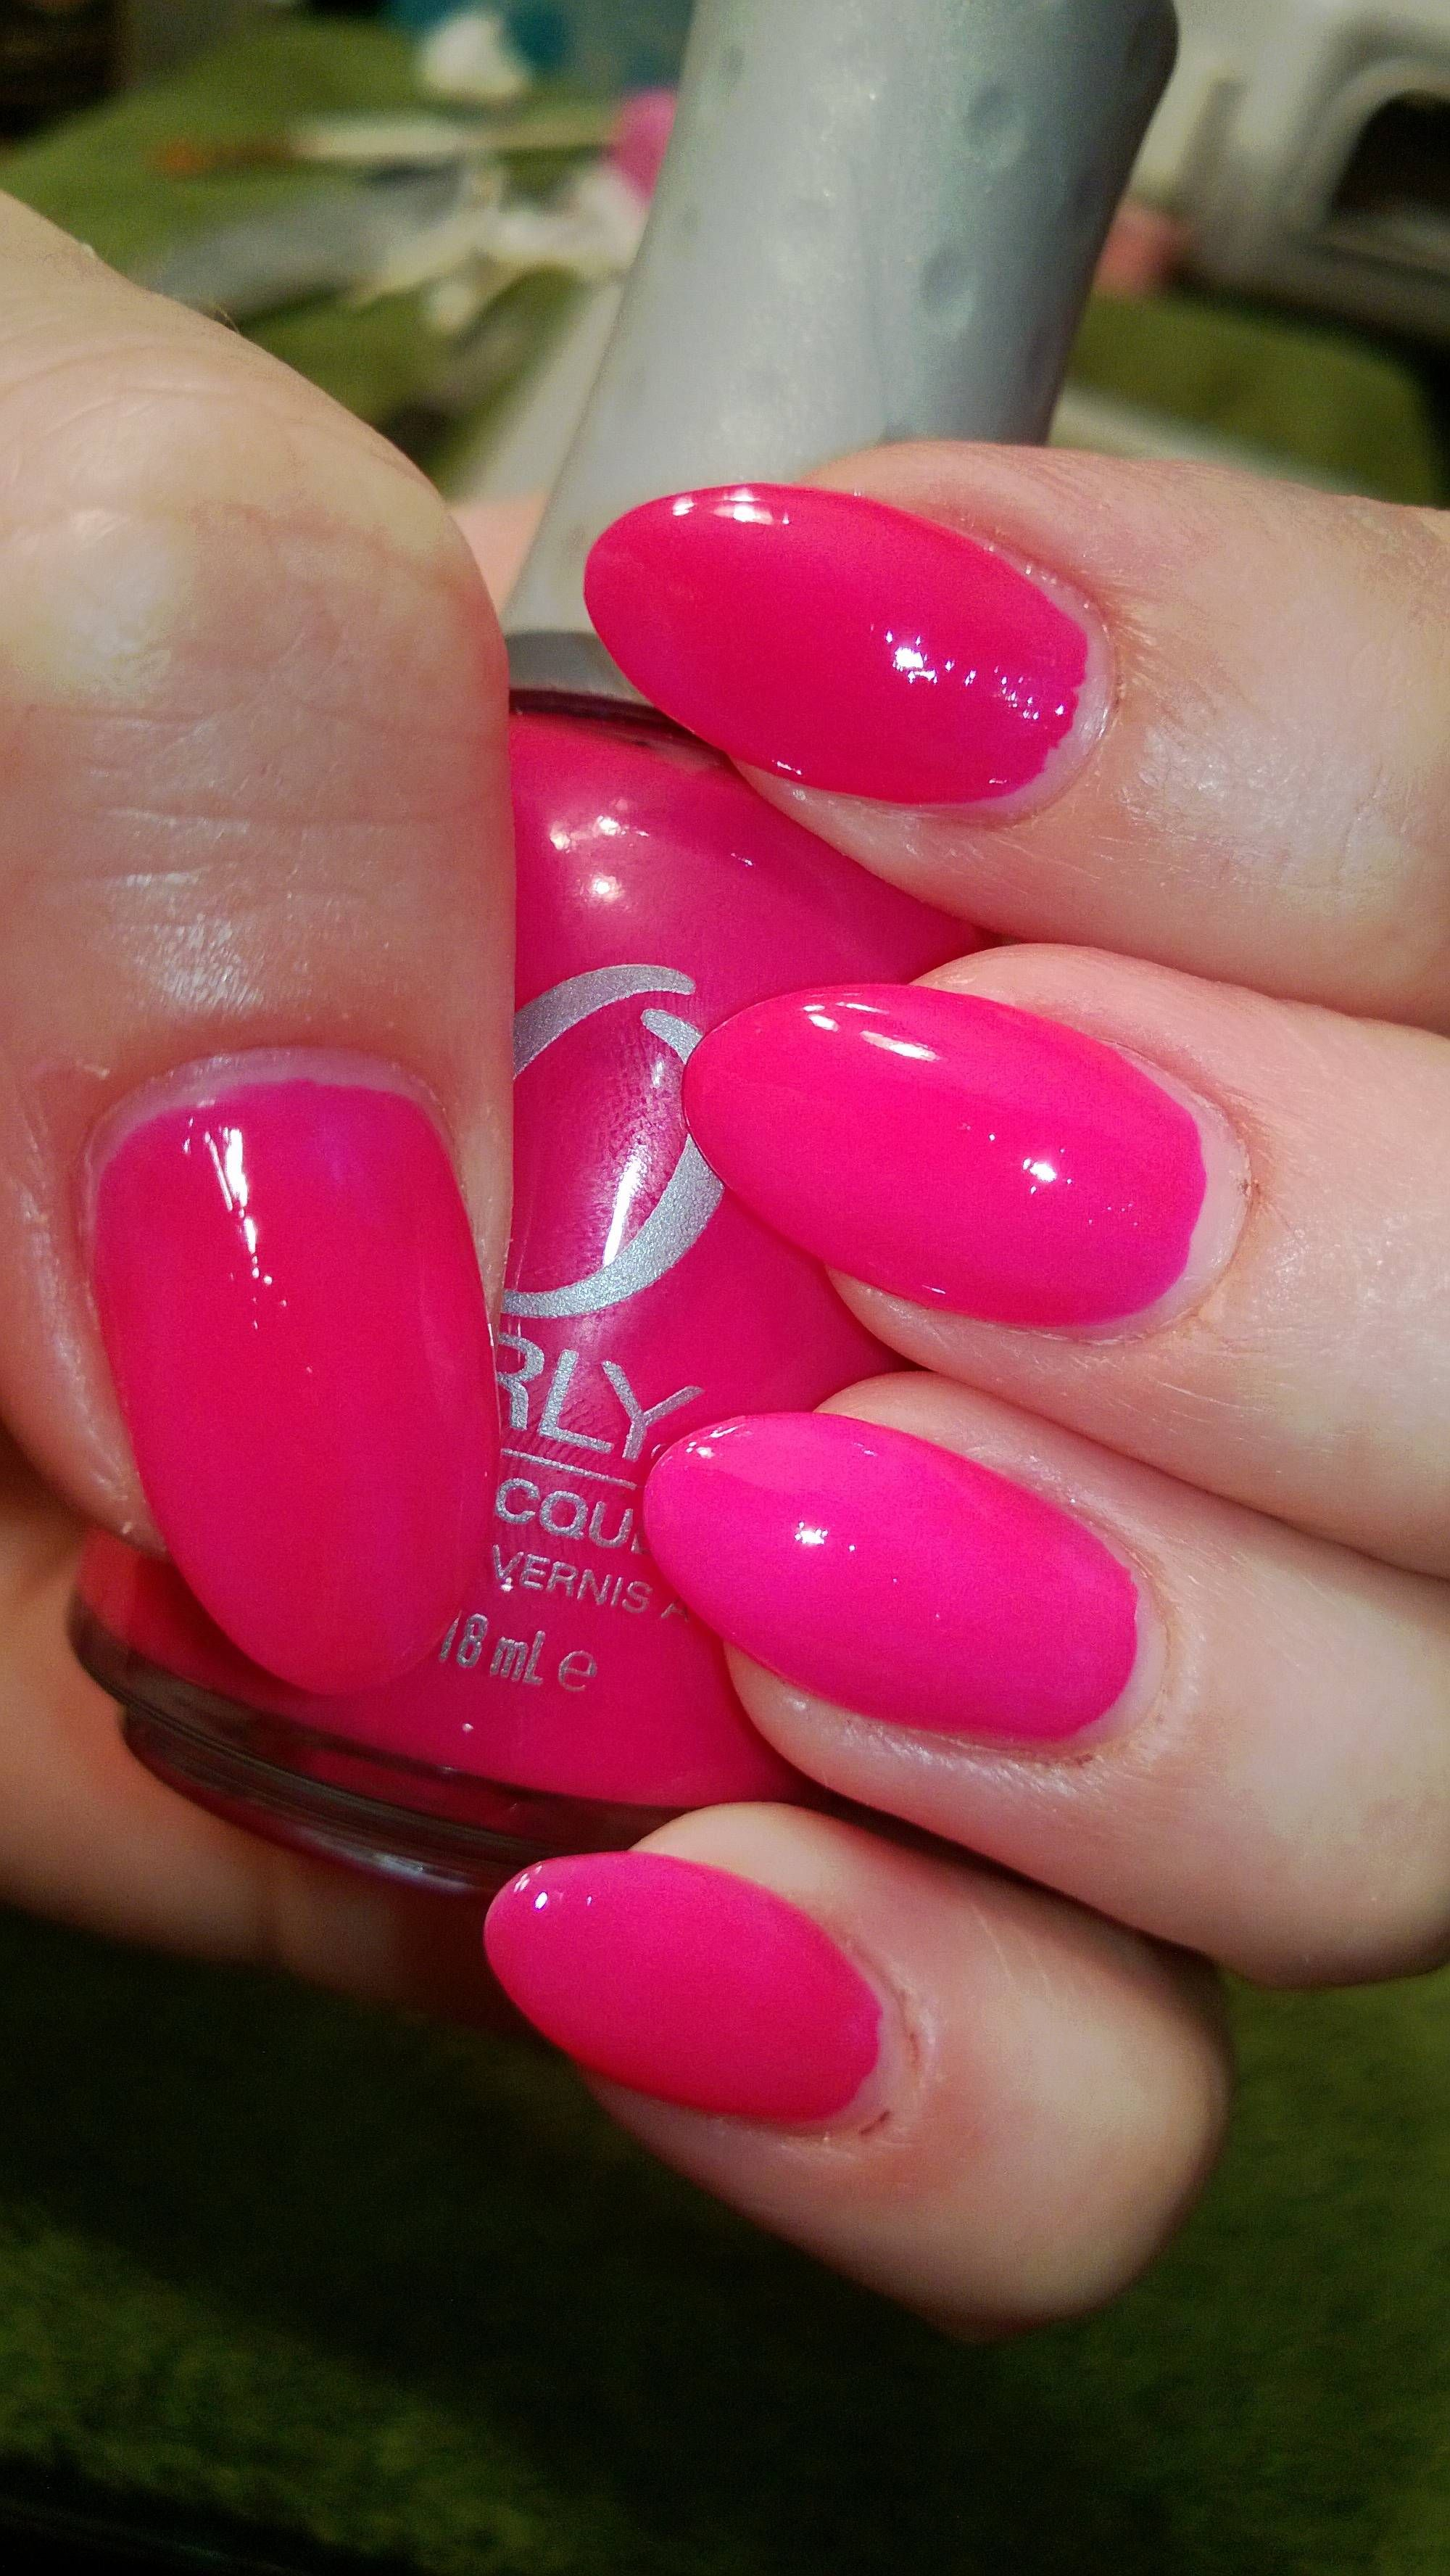 Image result for Orly Passion Fruit: neon pink nail polish | Next ...